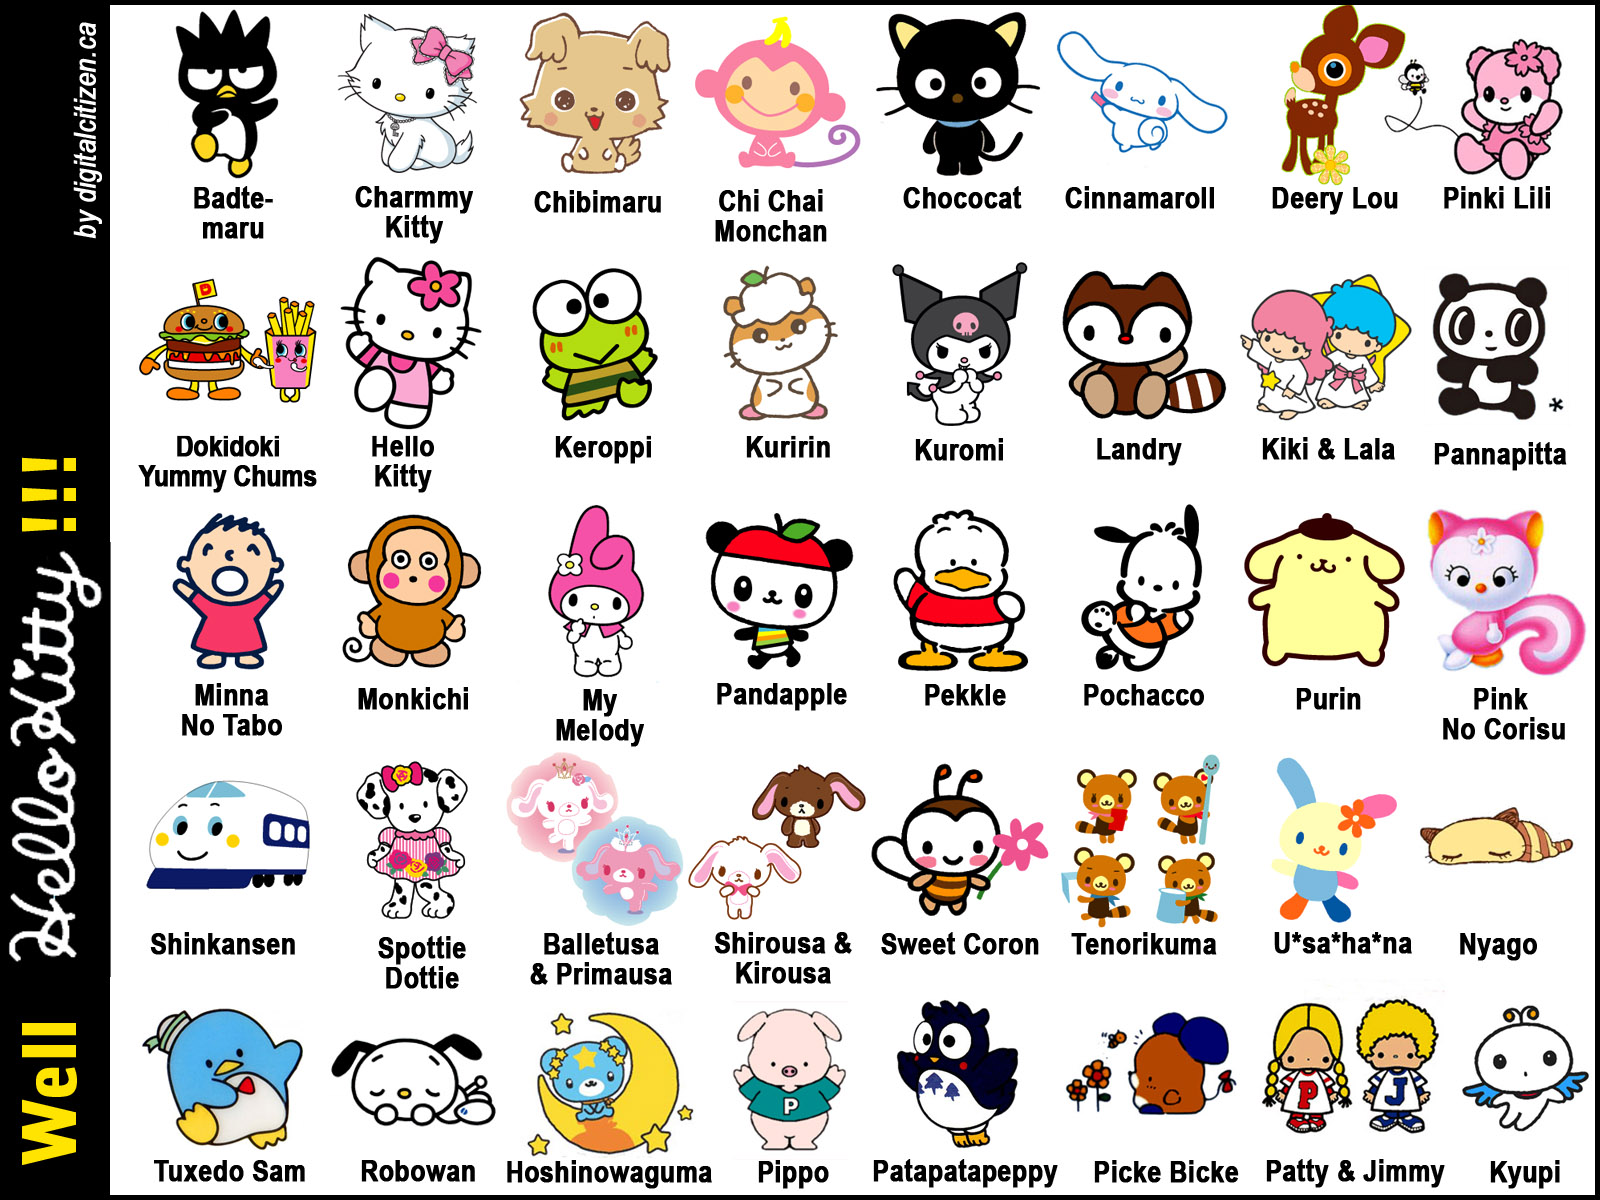 Beautiful Wallpaper Hello Kitty Friend - latest?cb\u003d20130124223935  HD_198343.jpg/revision/latest?cb\u003d20130124223935